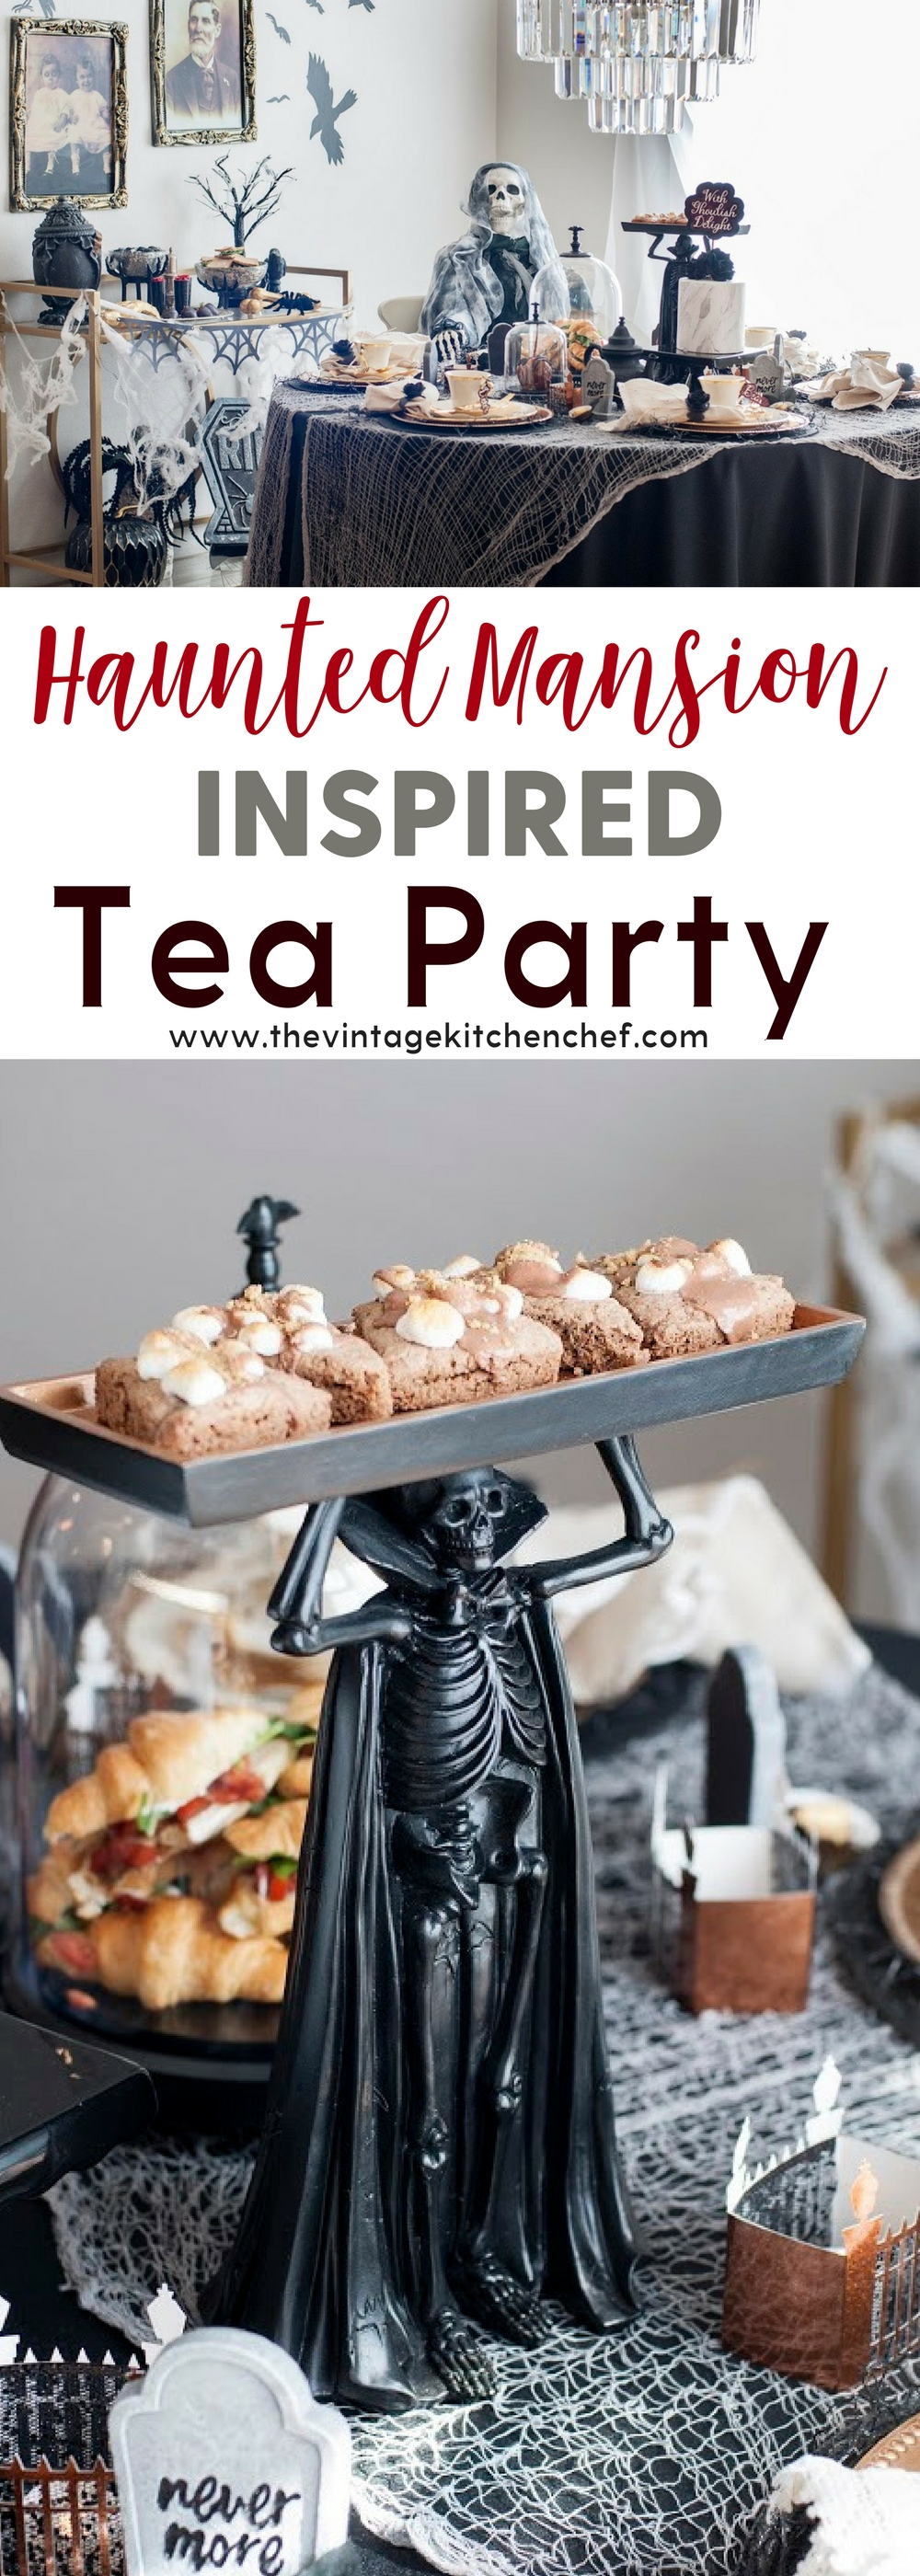 What's more fun than a Halloween tea party? A Haunted Mansion Inspired Tea Party, of course, complete with ghosts, ghouls, and delicious treats!